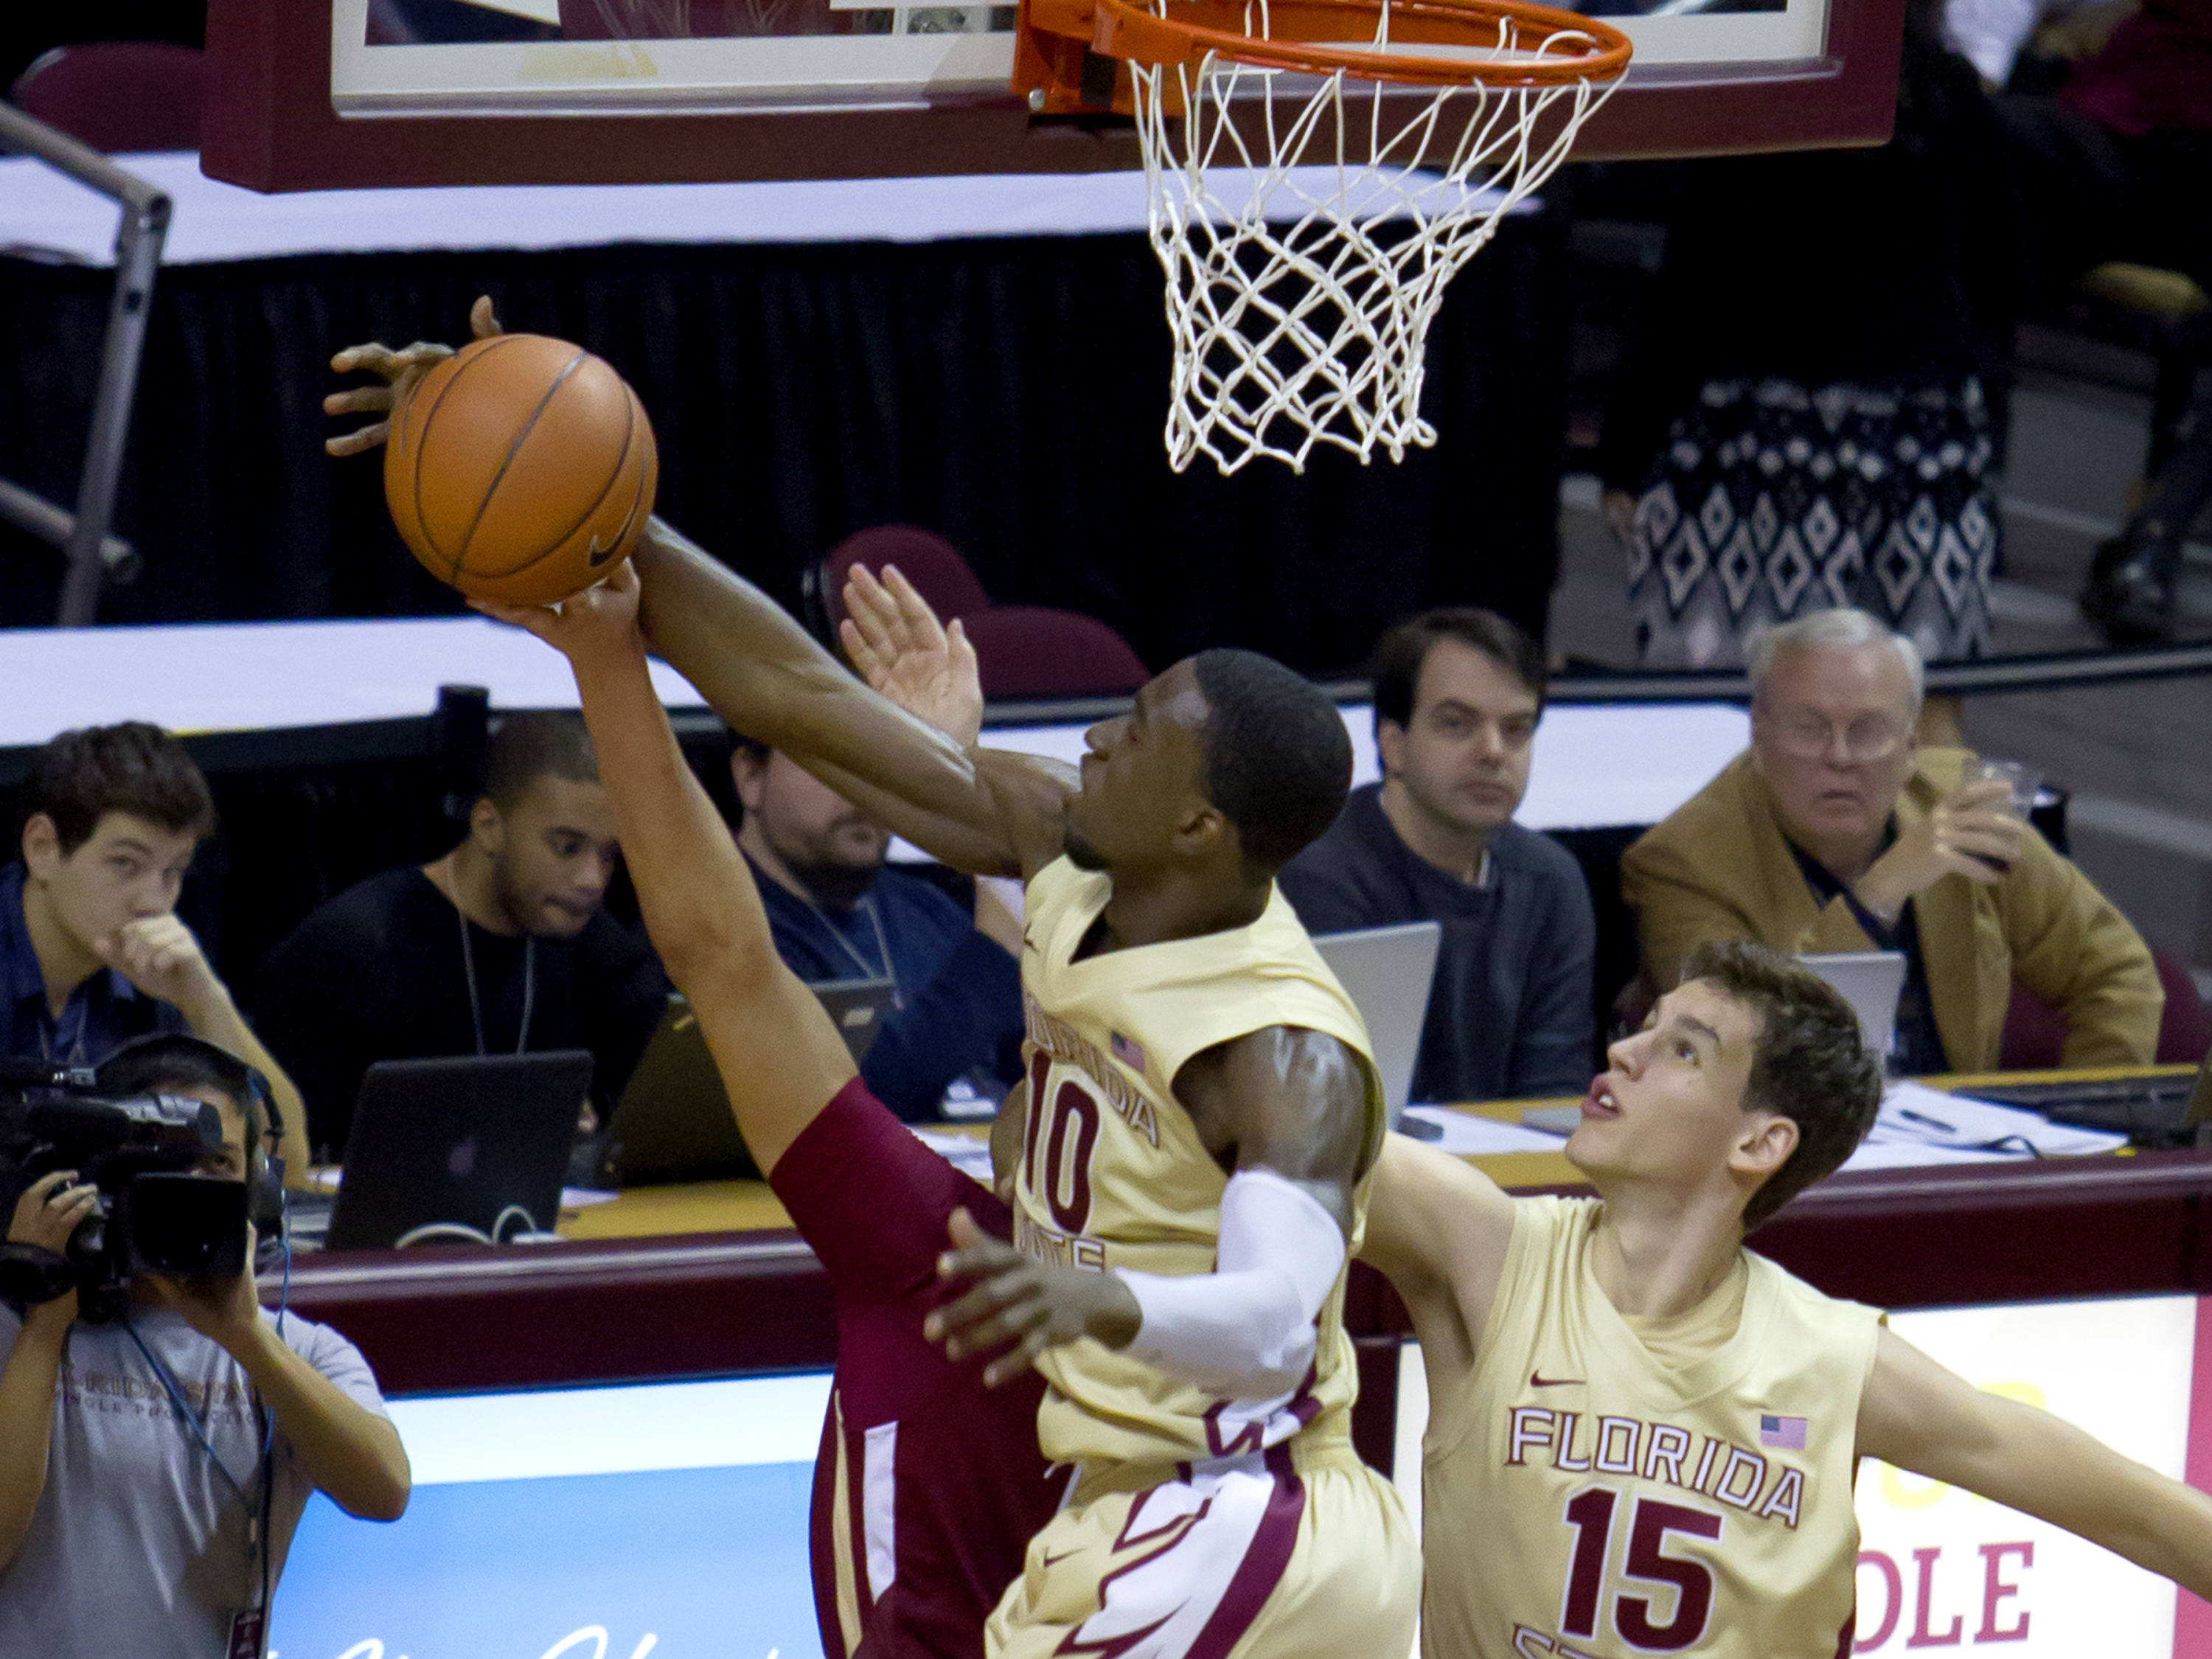 Okaro White (10) with a block, FSU vs BC, 02/16/13. (Photo by Steve Musco)